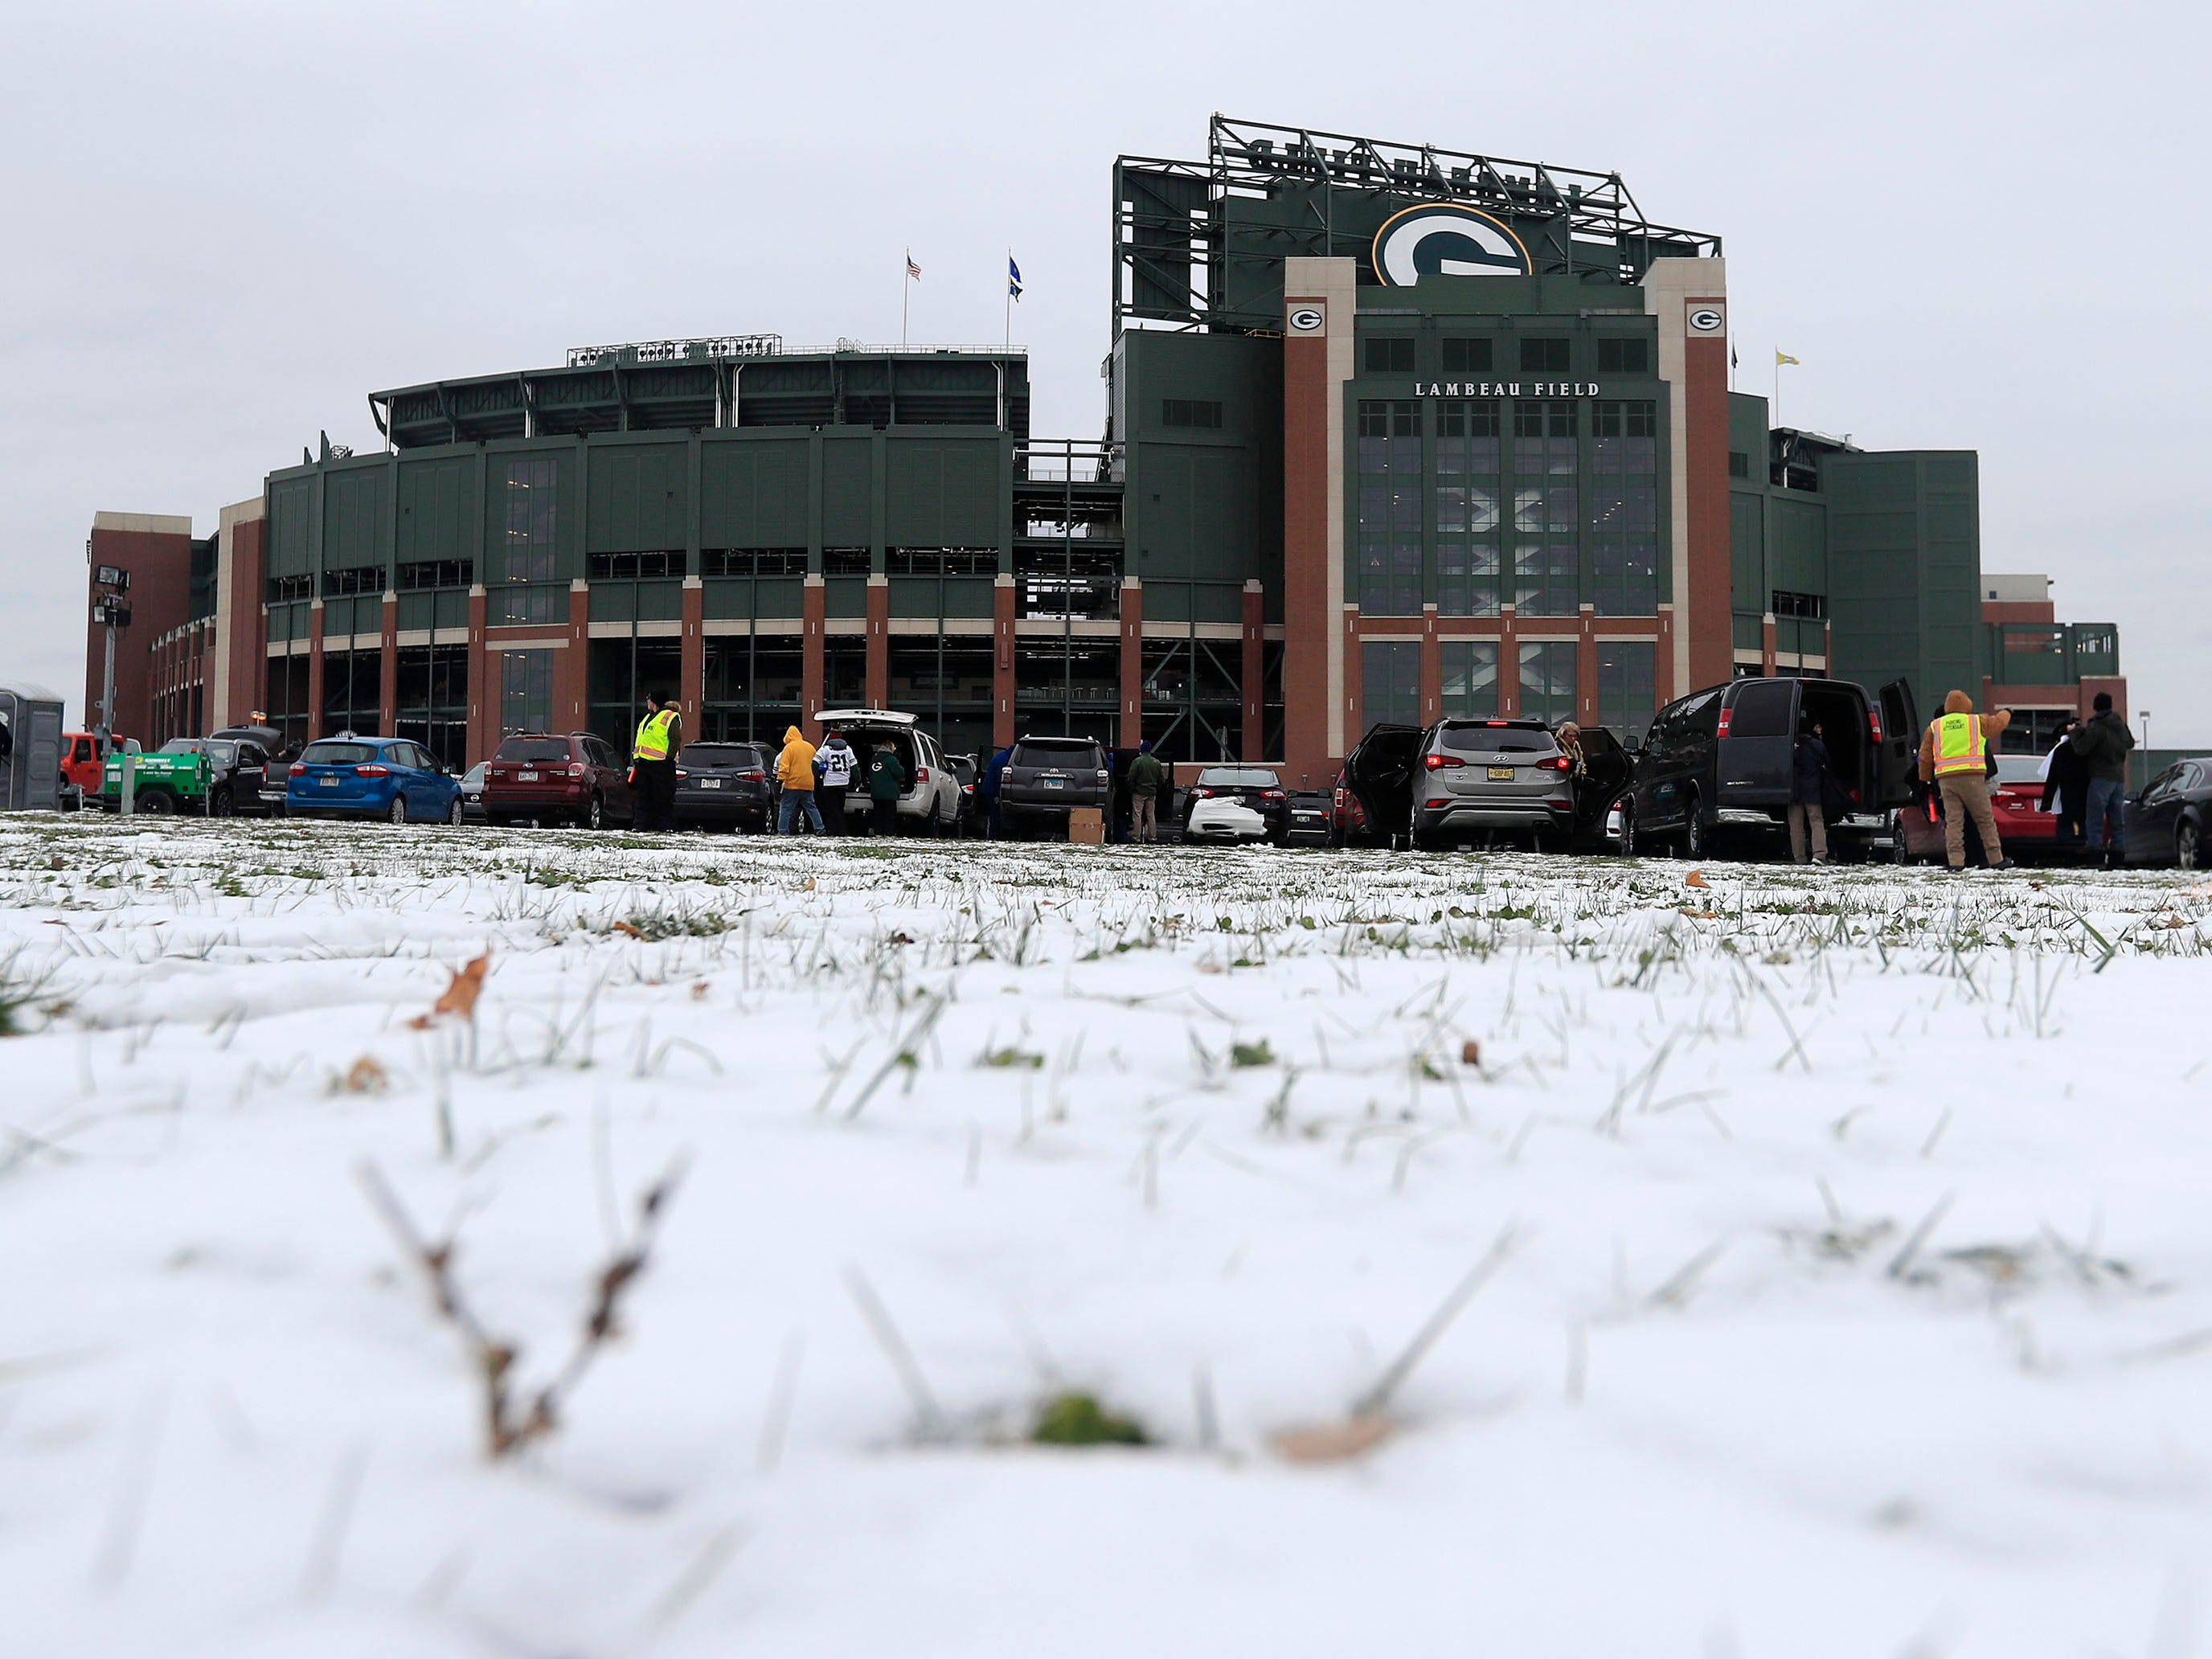 Week 10: Snow covers the ground outside Lambeau Field prior to the game between the Miami Dolphins and the Green Bay Packers. The Packers won the game, 31-12.